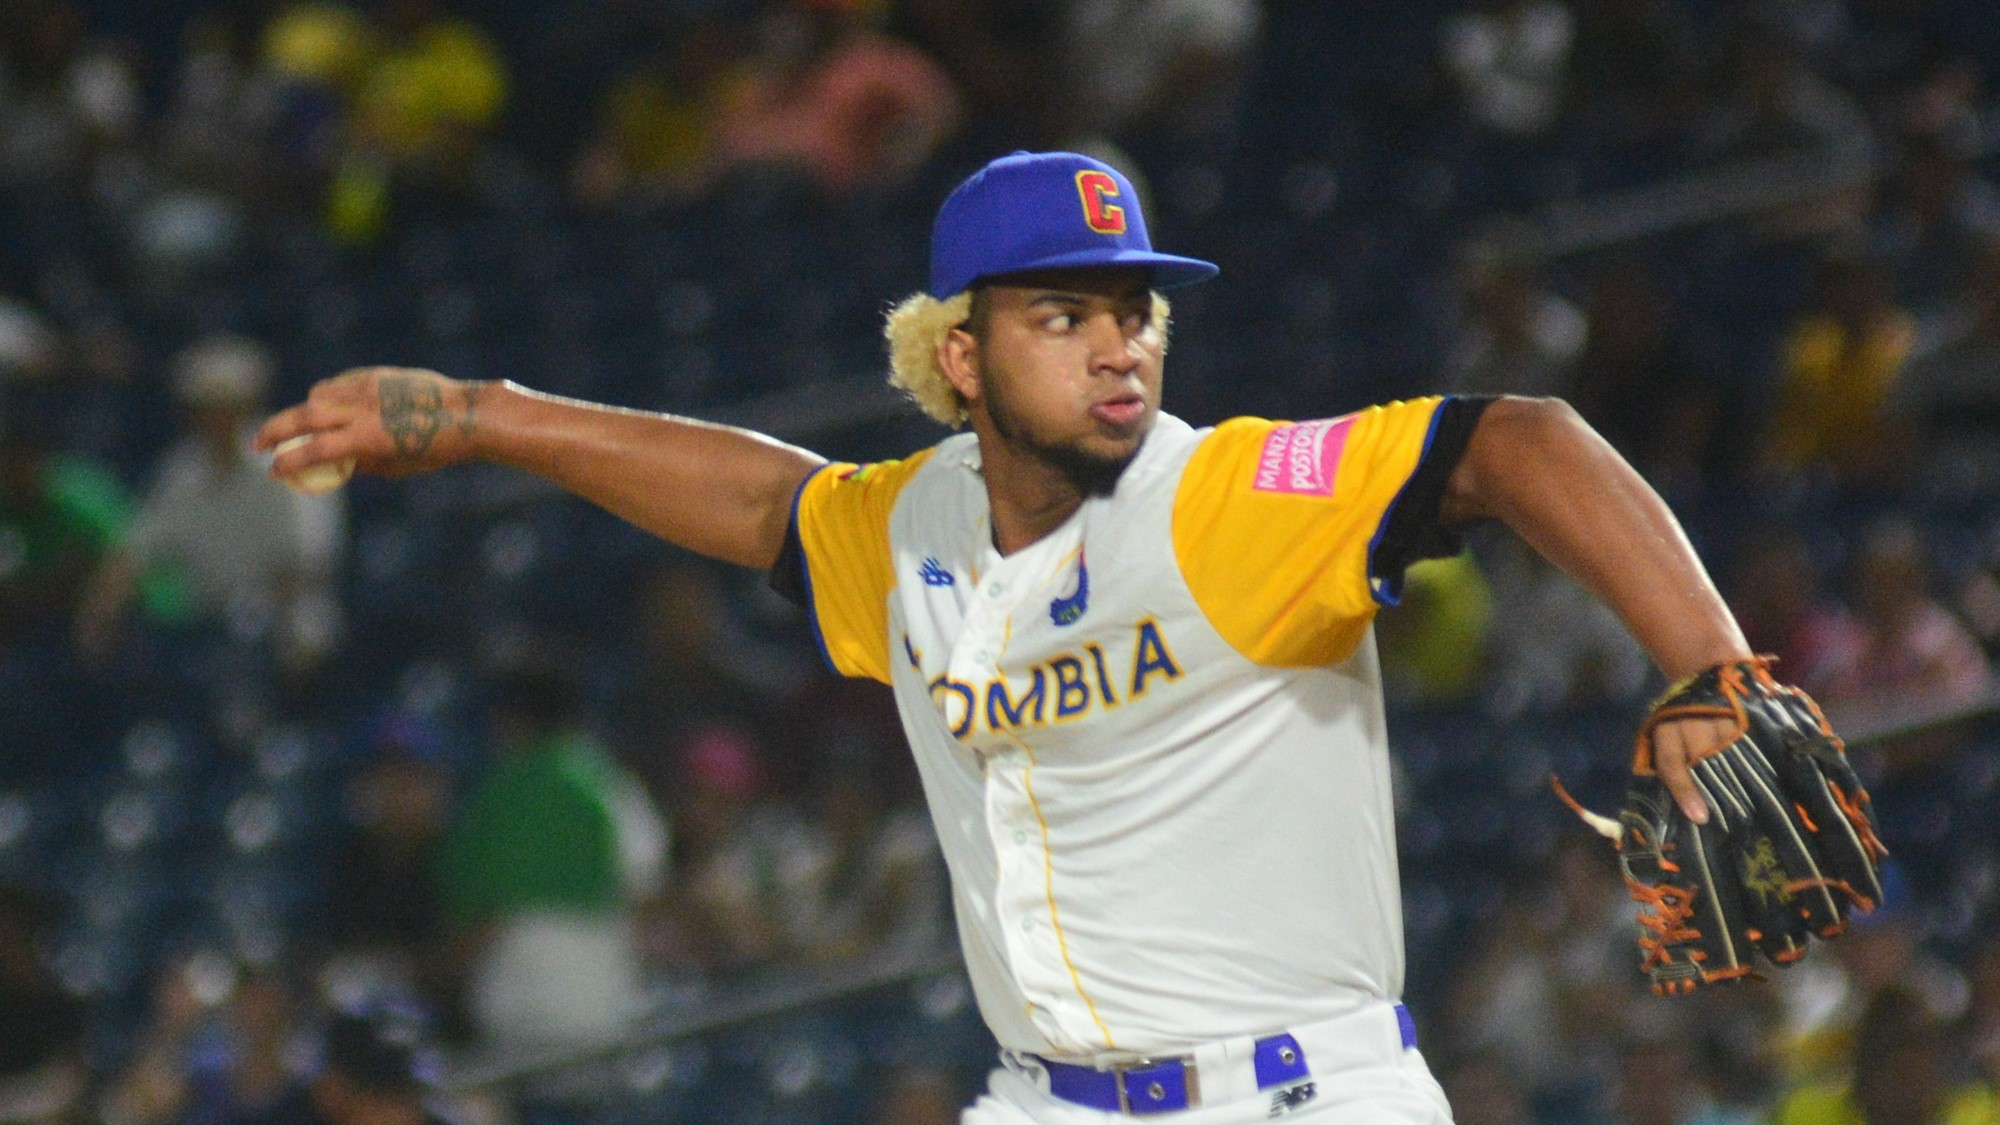 Colombia relieved starter Luis Moreno after two innings; he hadn't allowed a hit